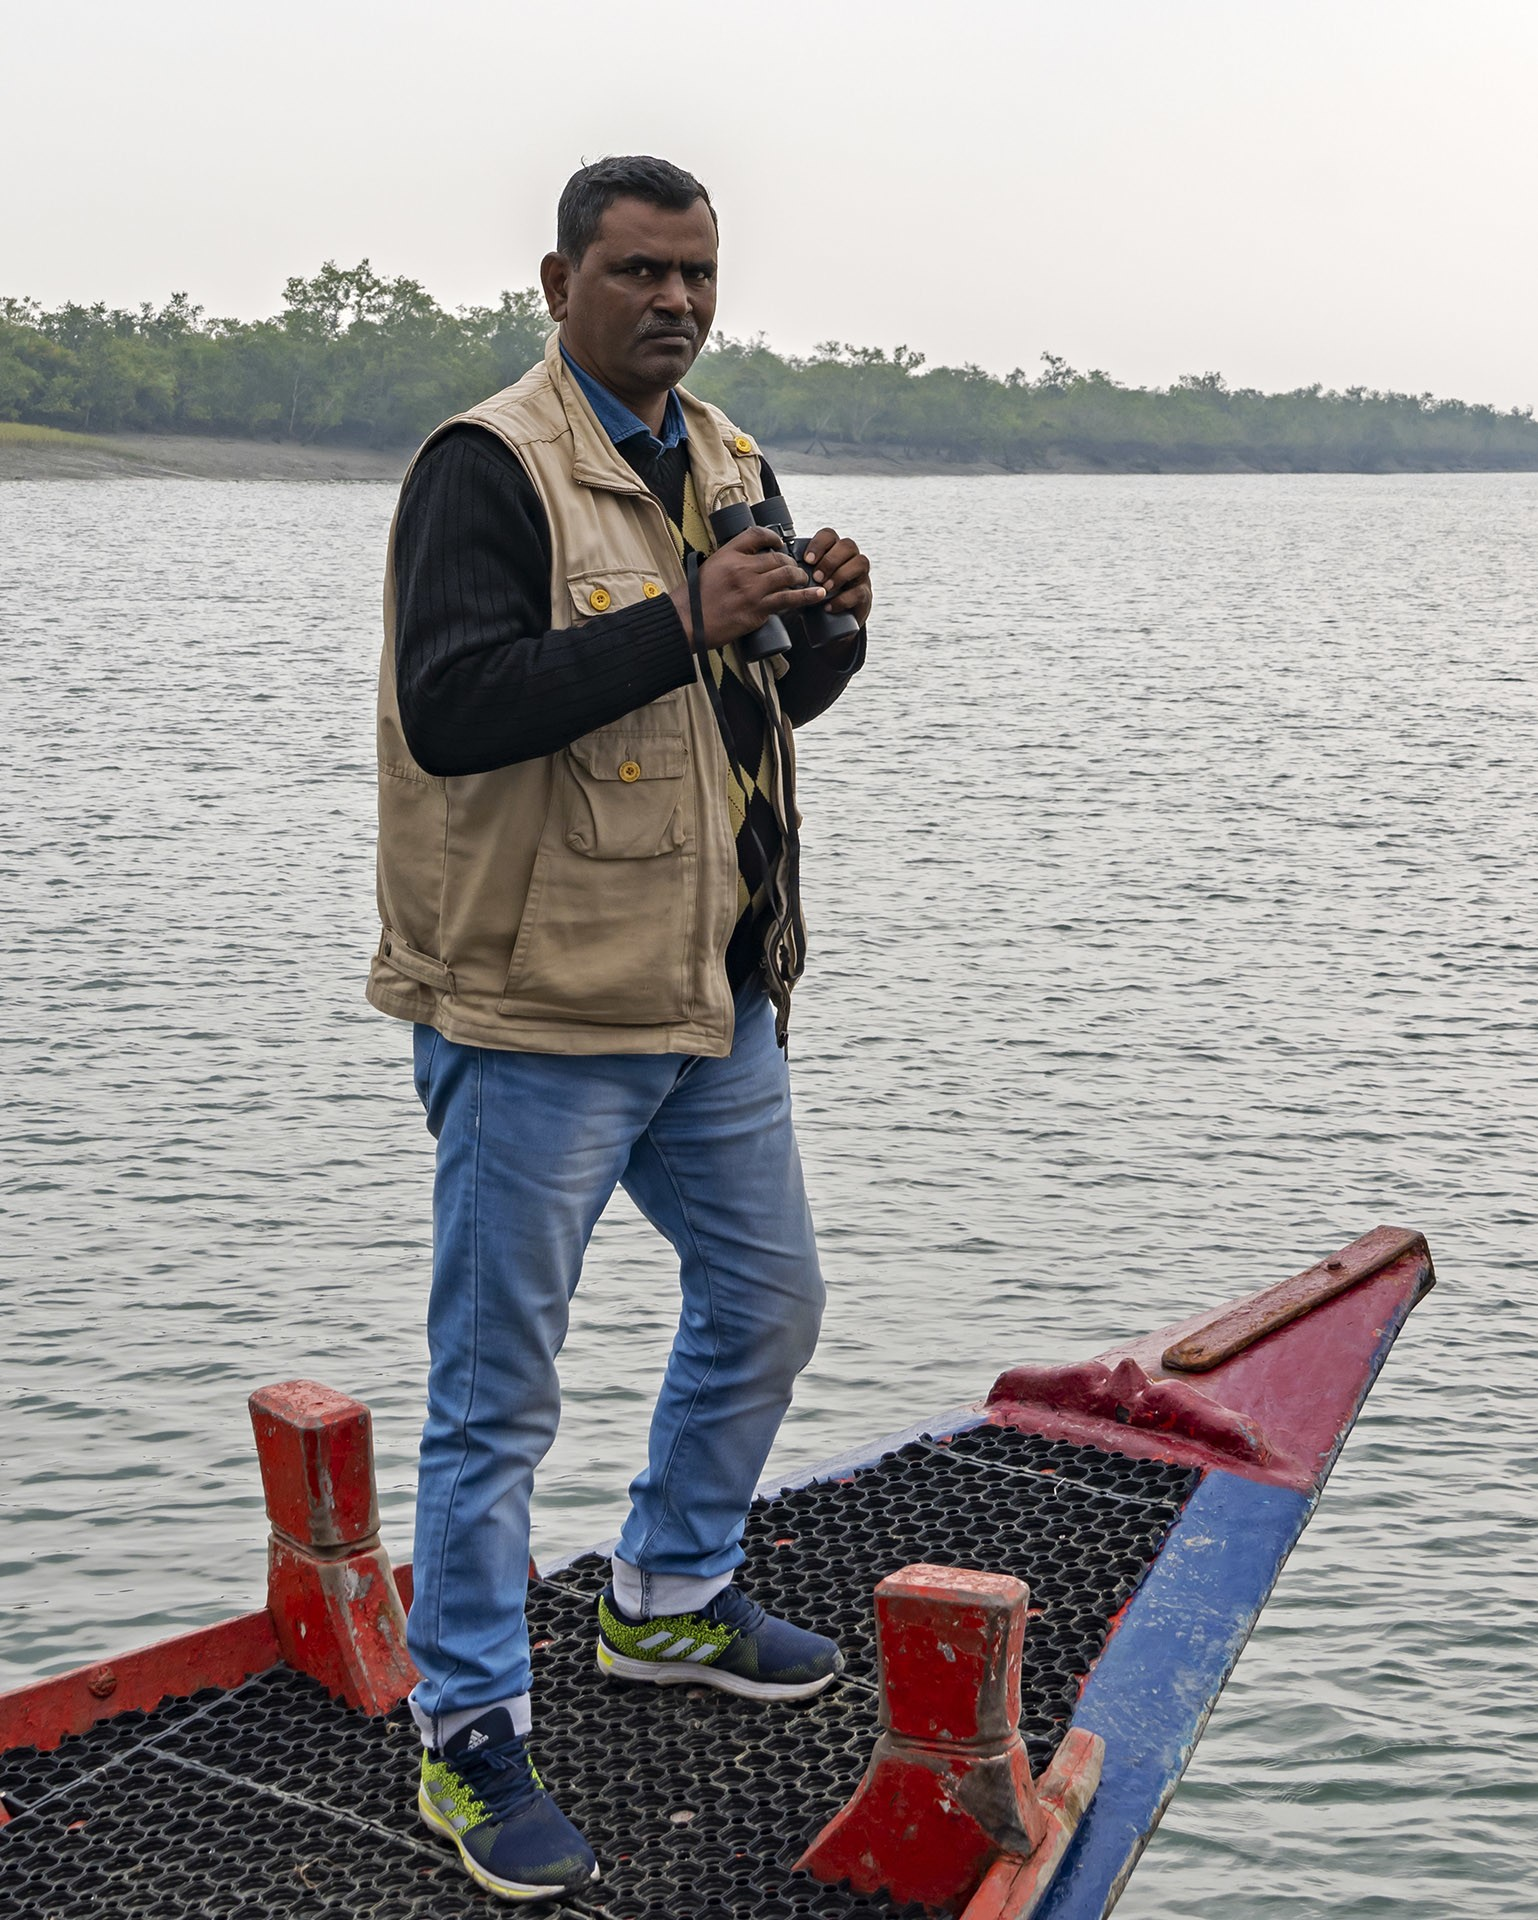 Anil Mistry has lived on several different islands in the Sundarbans through his life,and knows itsforest and inhabitants, human and non-human, intimately. Photos: Dhritiman Mukherjee